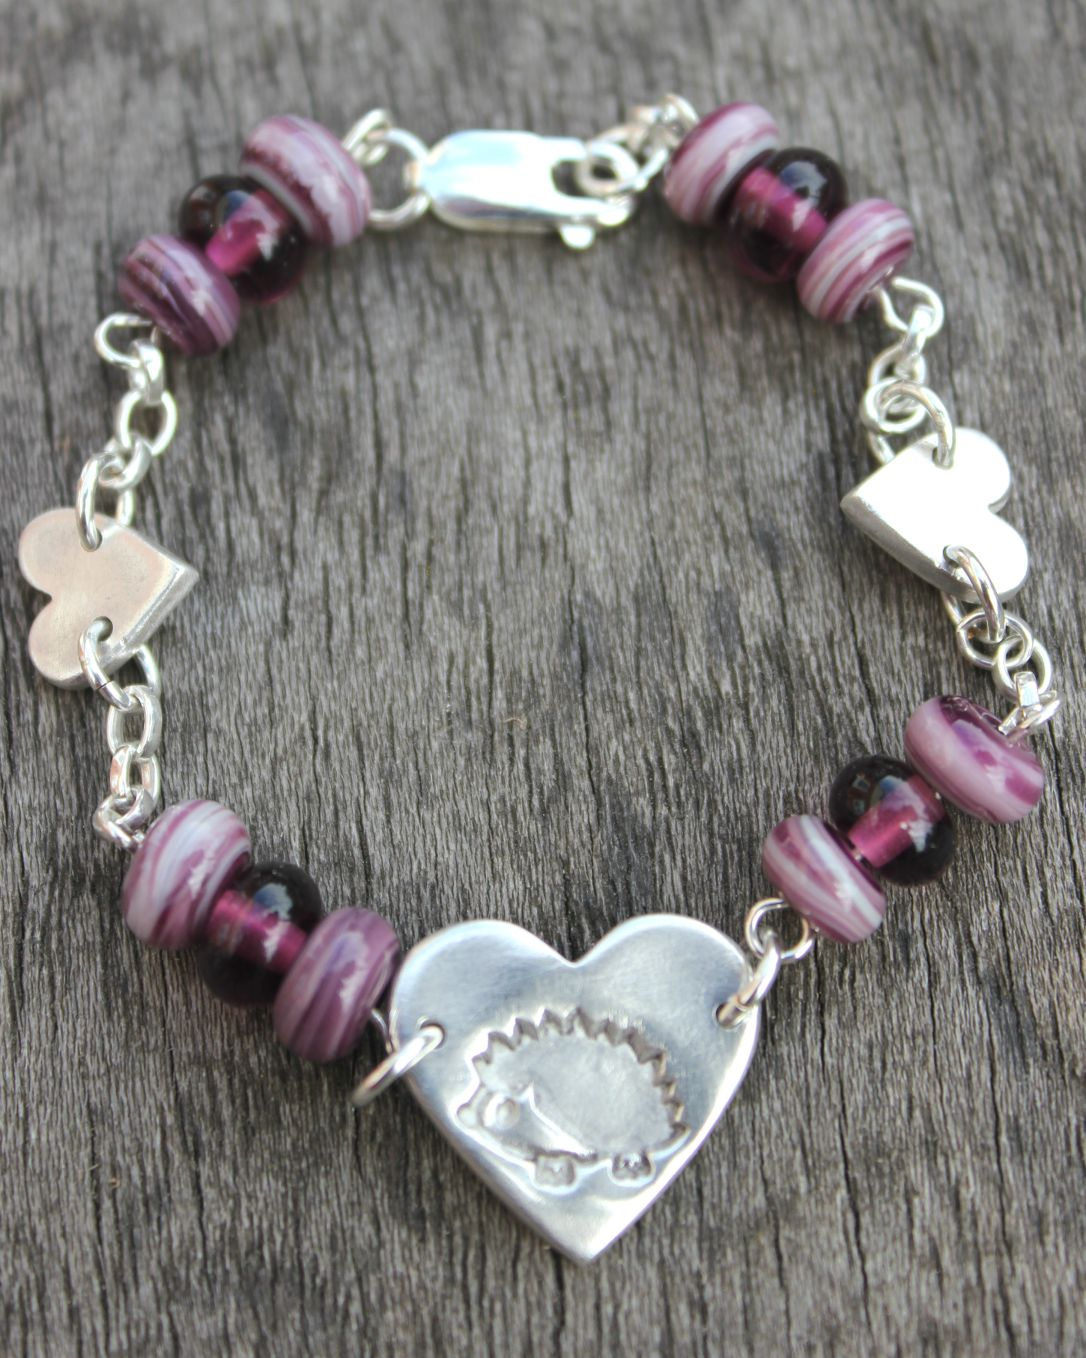 Hedgehog heart bracelet, silver hedgehog bracelet, glass bead bracelet by Little Silver Hedgehog